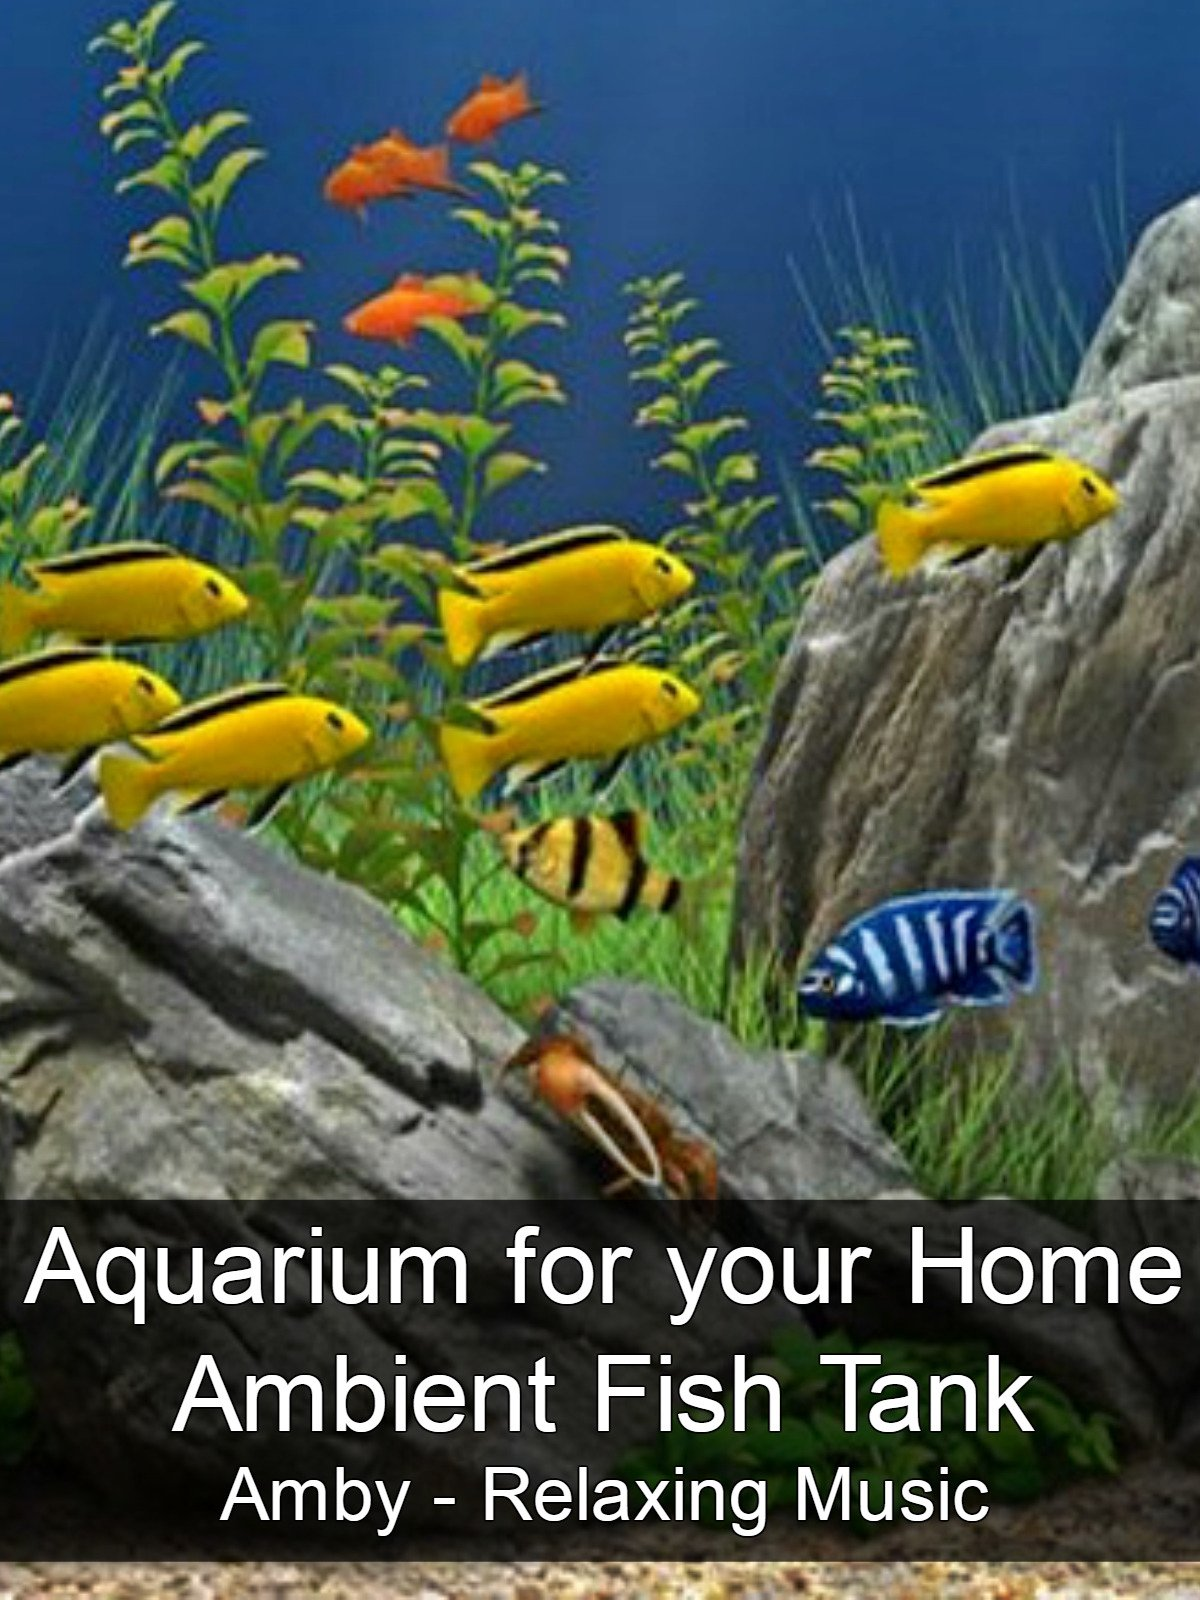 Aquarium for your Home